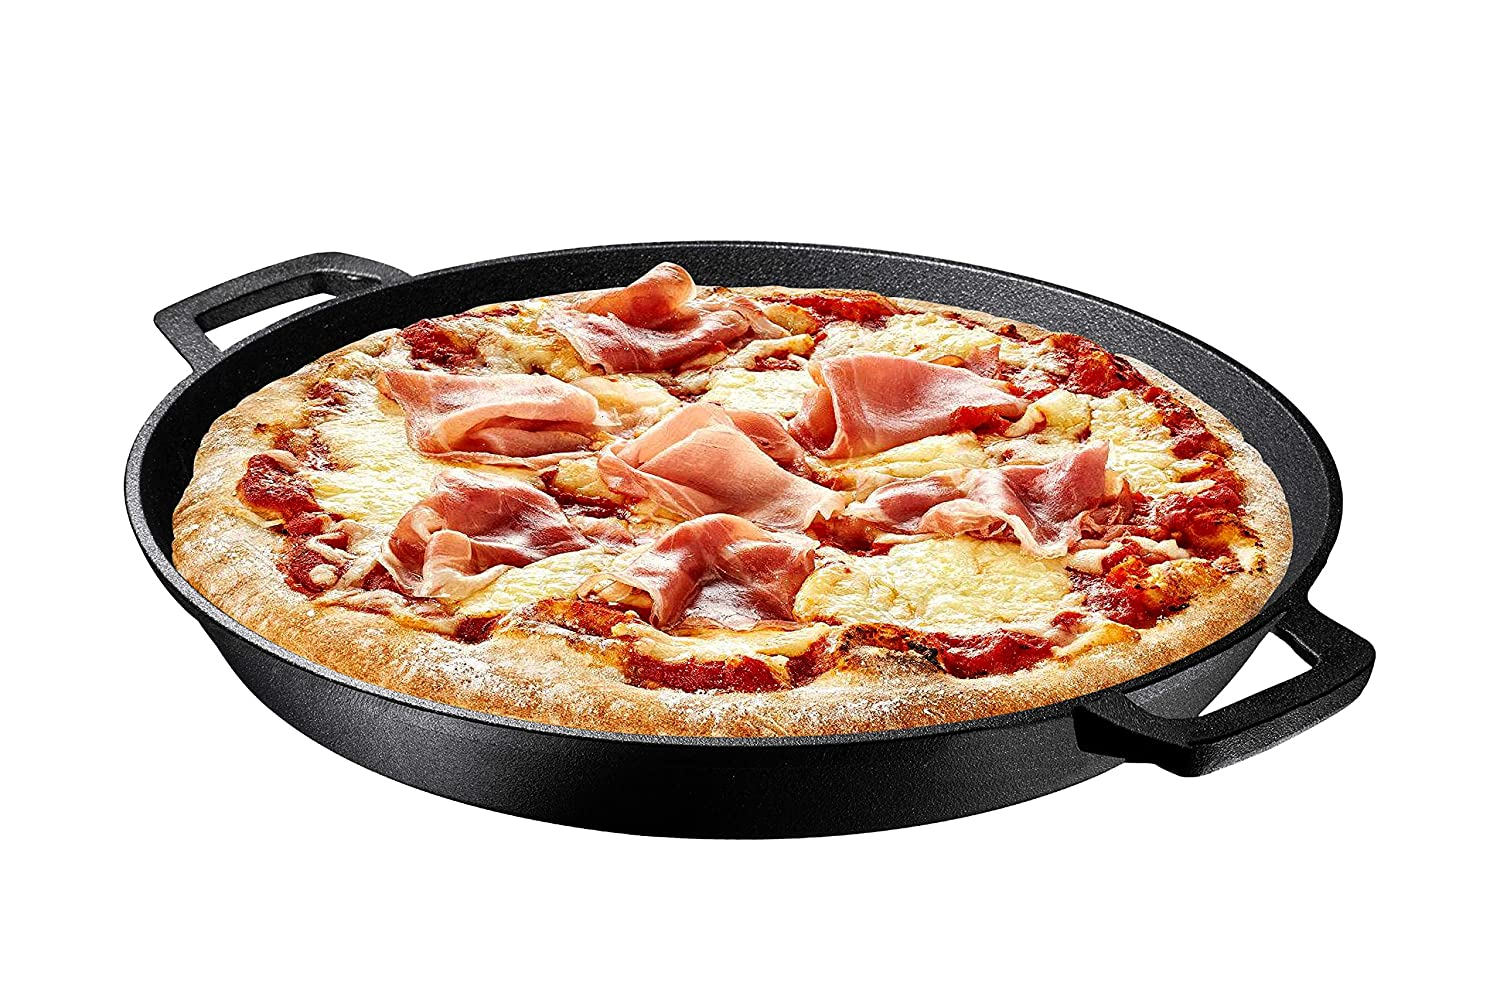 "Pre Seasoned Cast Iron Skillet Dual Handles - 16"" Durable Frying Pan Deep Pizza Pan Large Loop Handles, Camping Skillet, Pizza Pan"